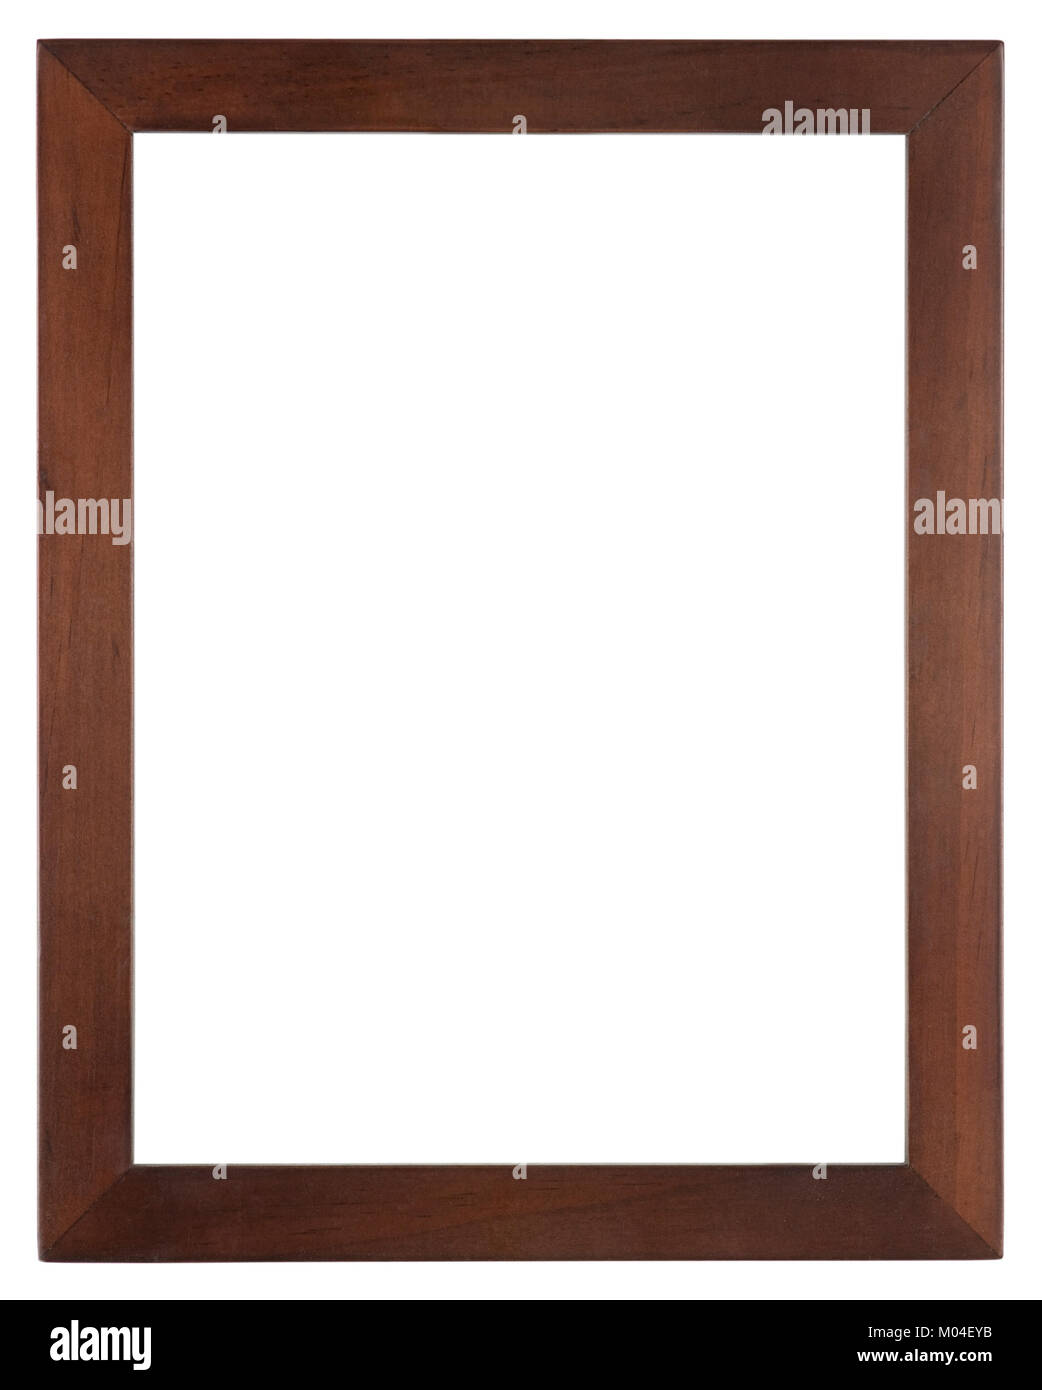 Empty picture frame isolated on white, portrait format in dark stained wood - Stock Image